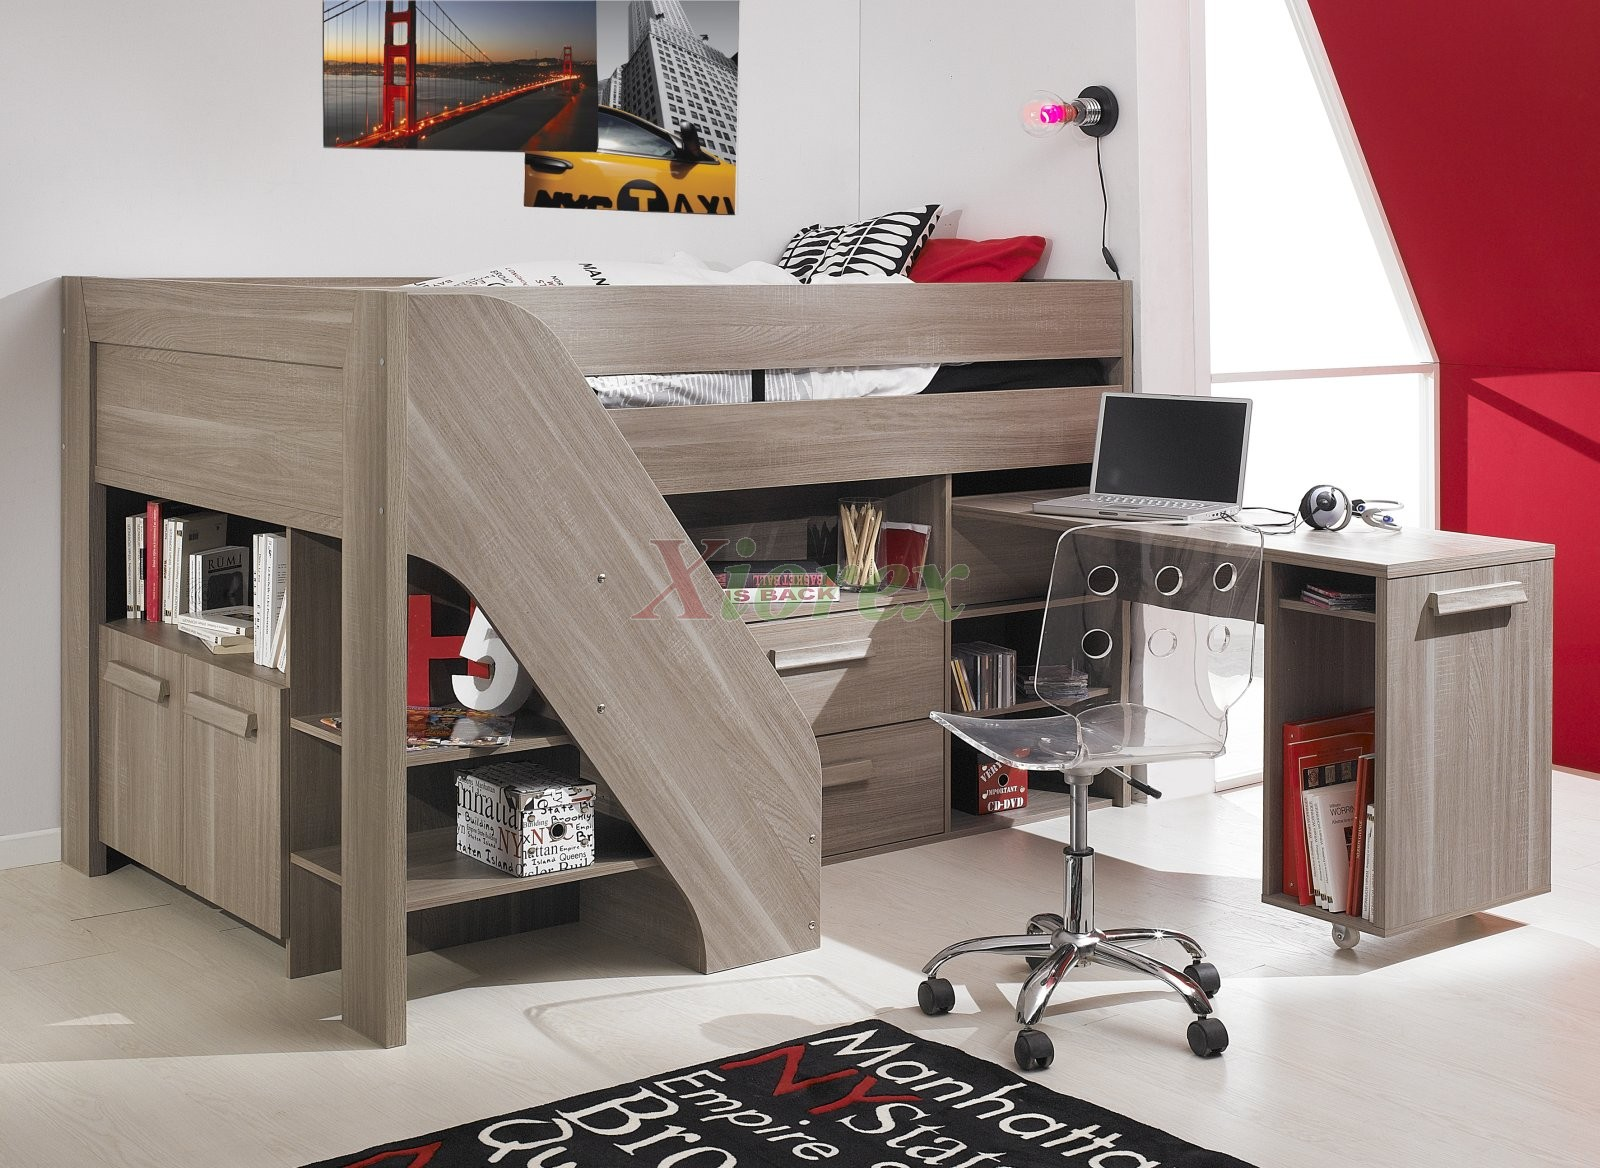 Loft Beds for teens with cool desk and stairs plus carpet